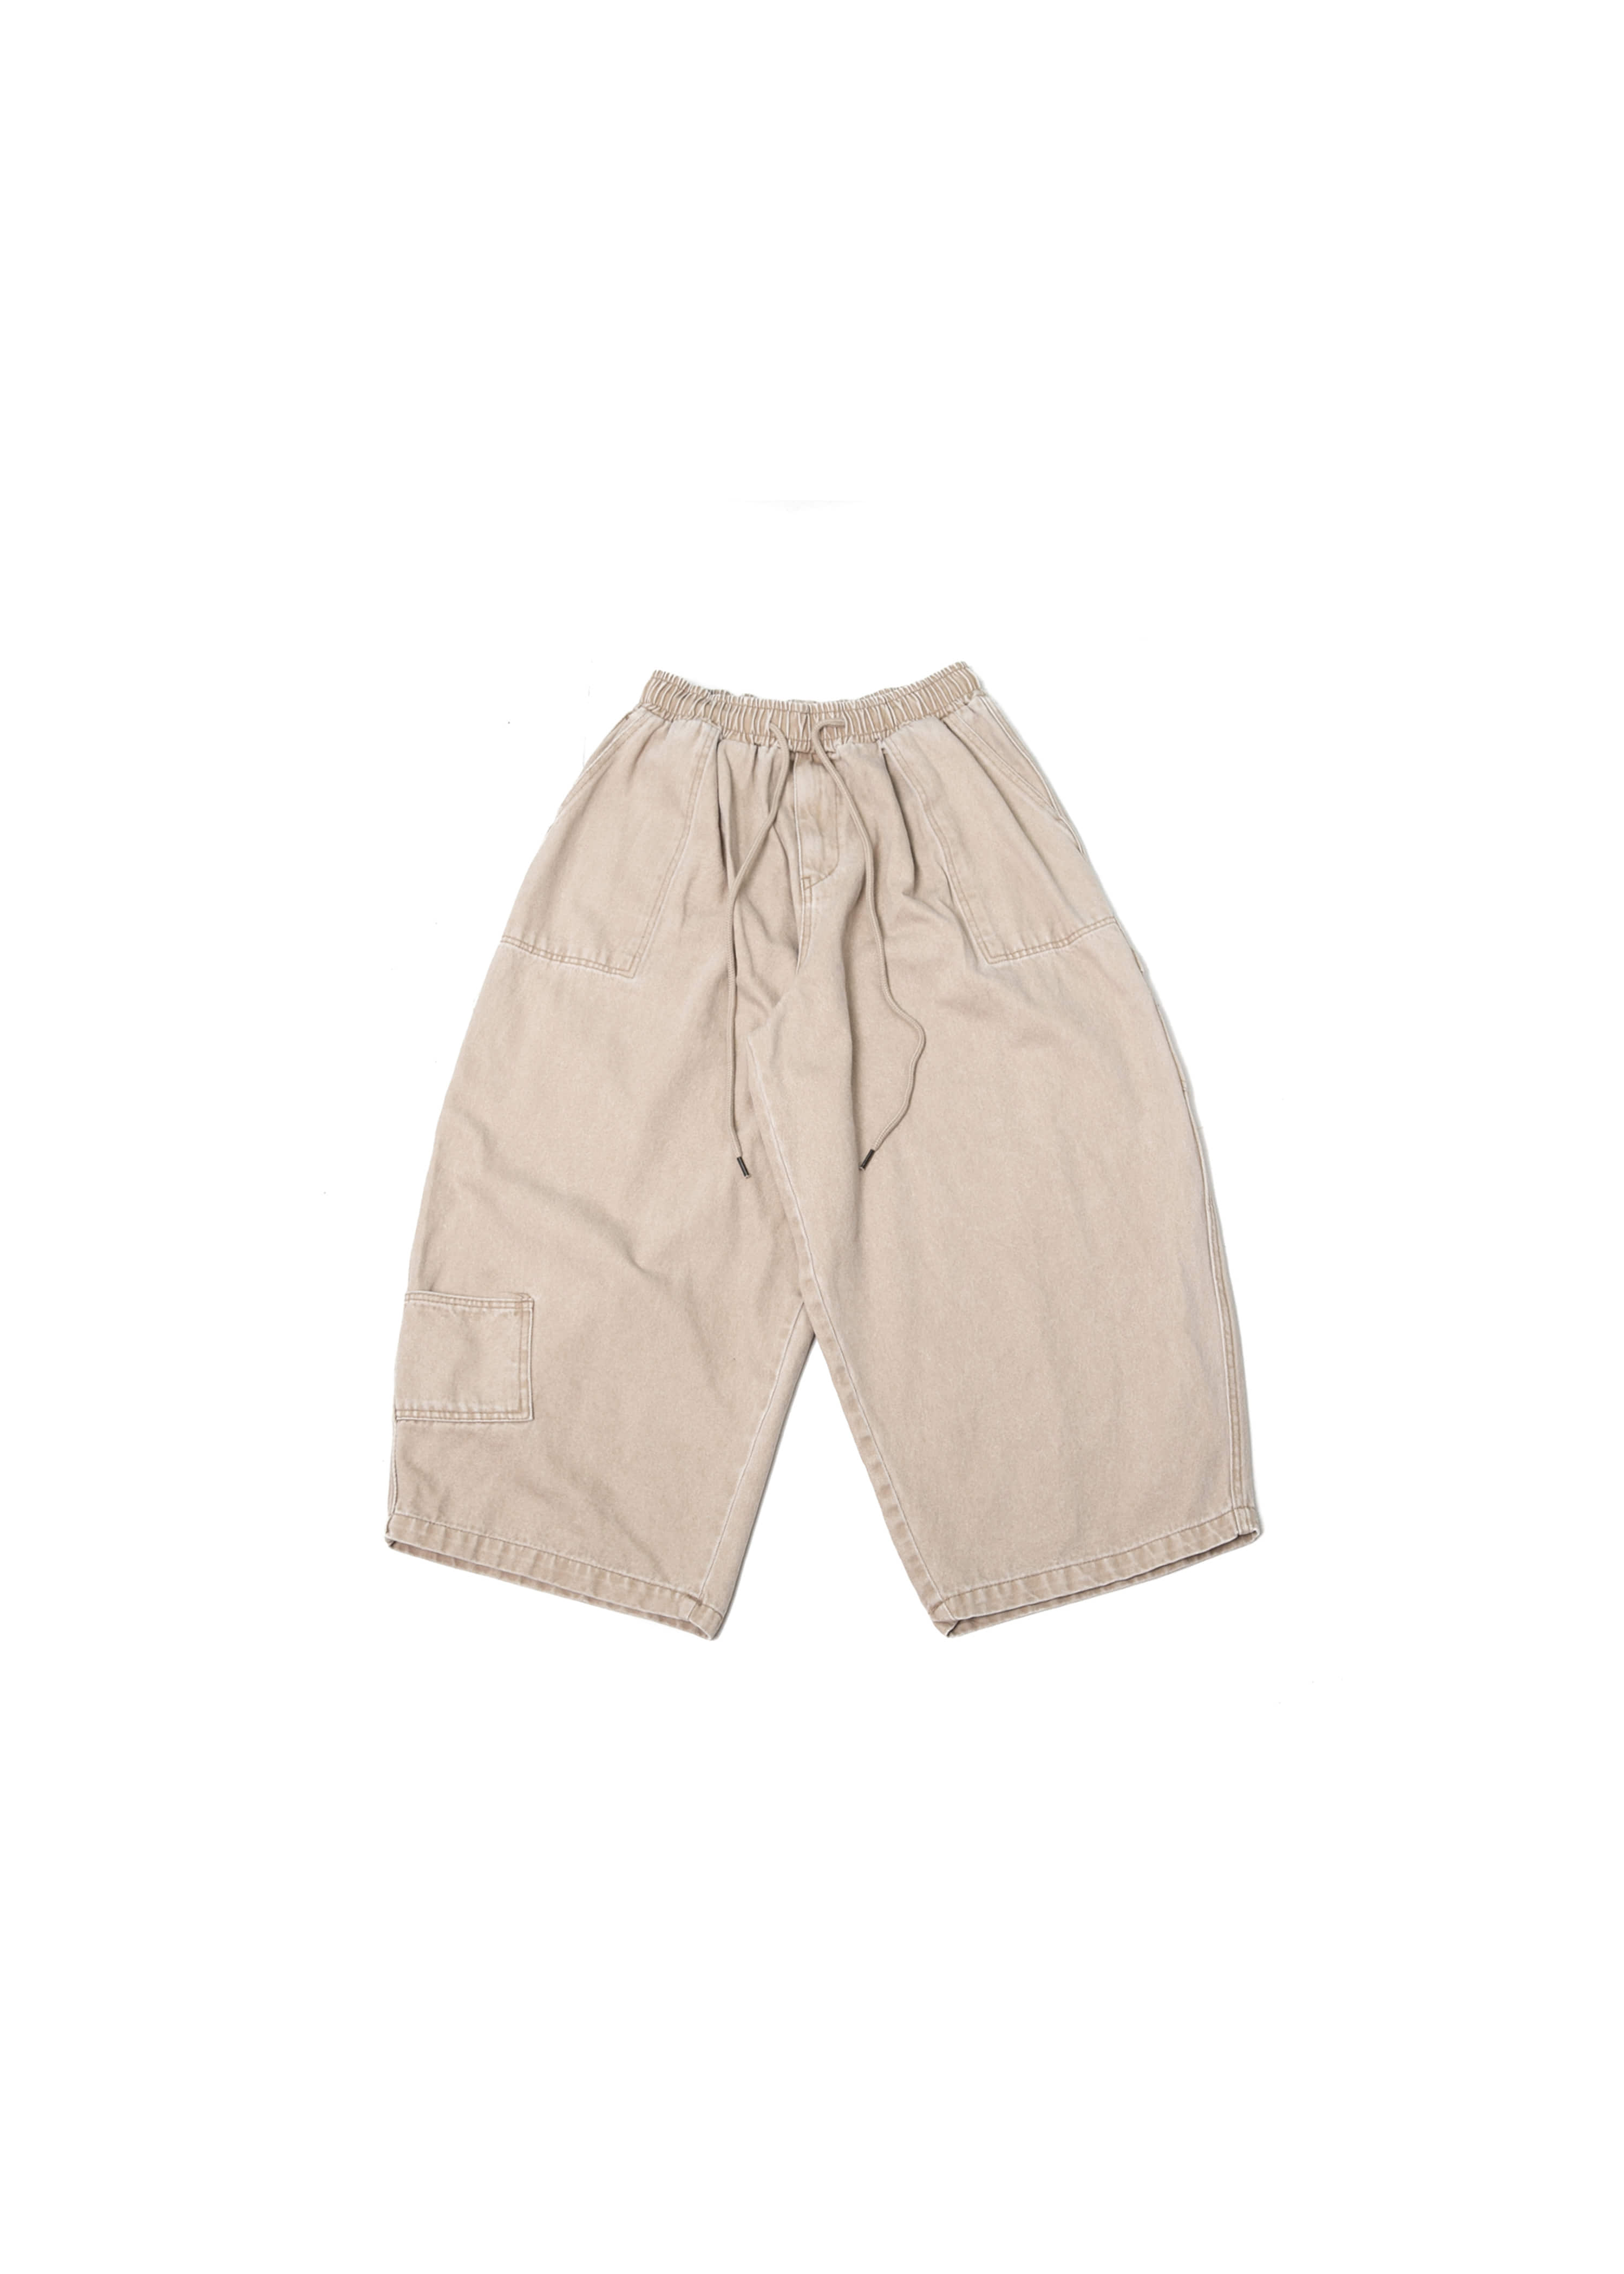 Pigment Fatigue Balloon Pants - Beige